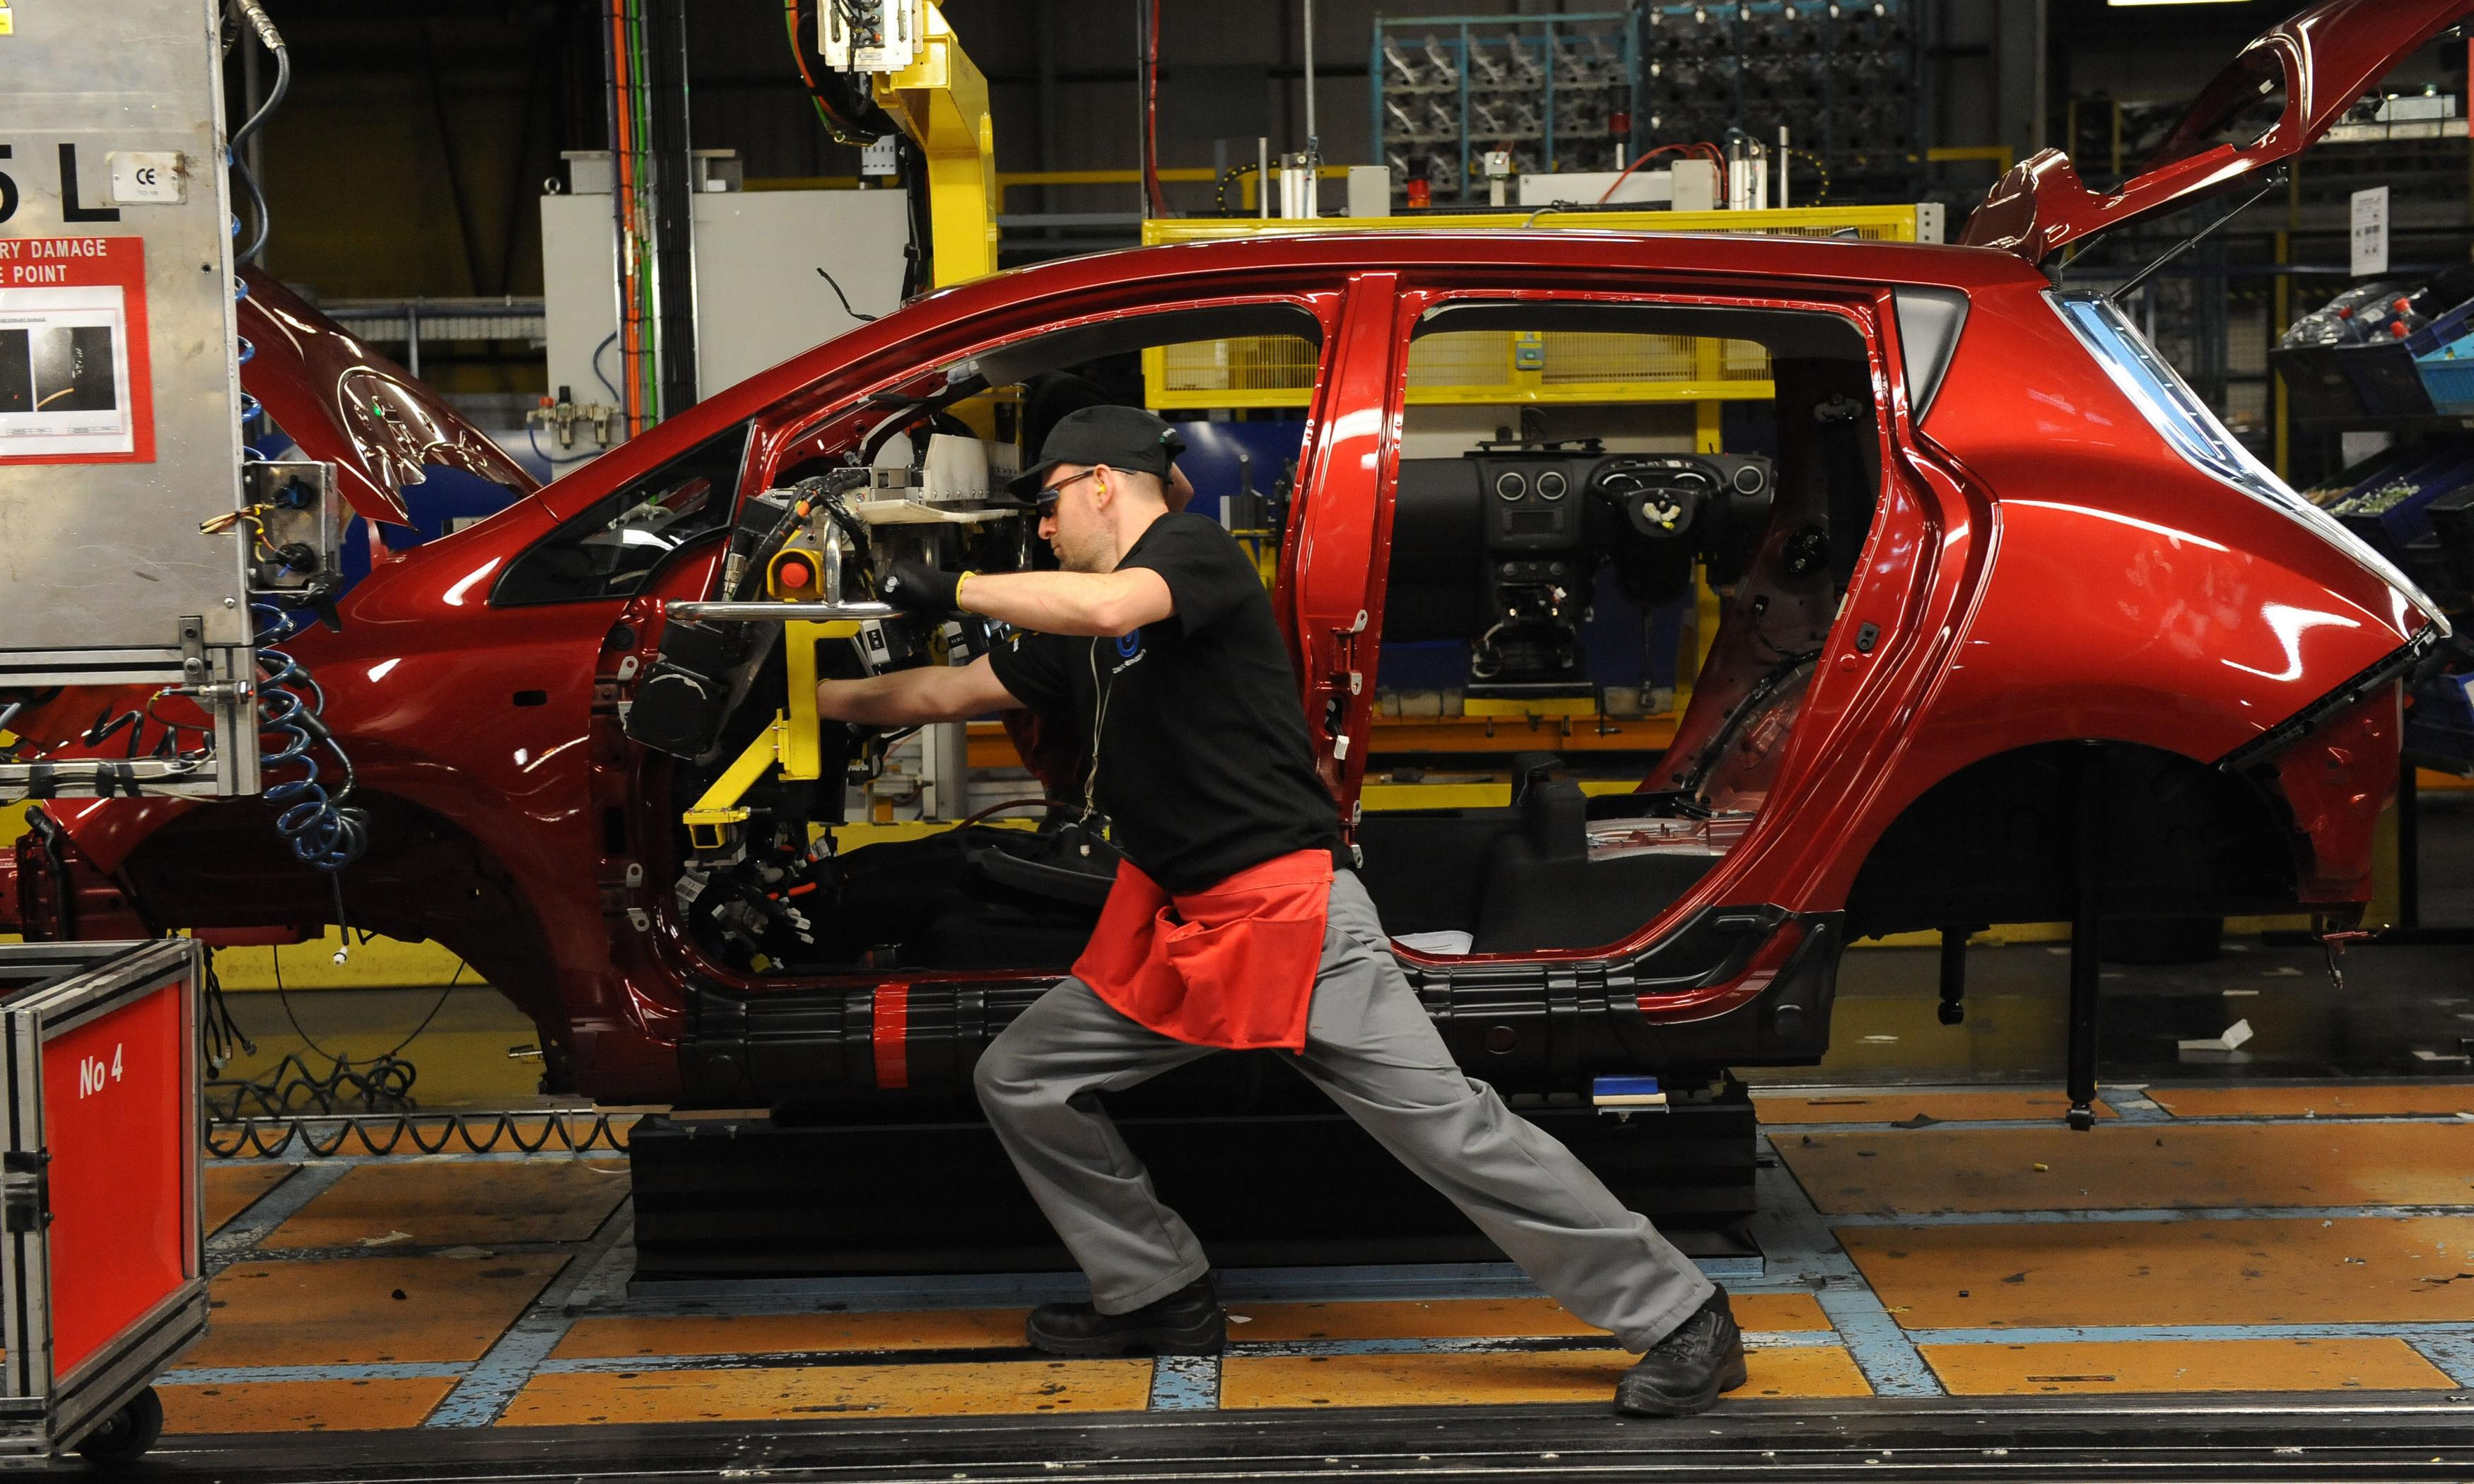 Industrial exports are the engine of developed economies. Ours has stalled